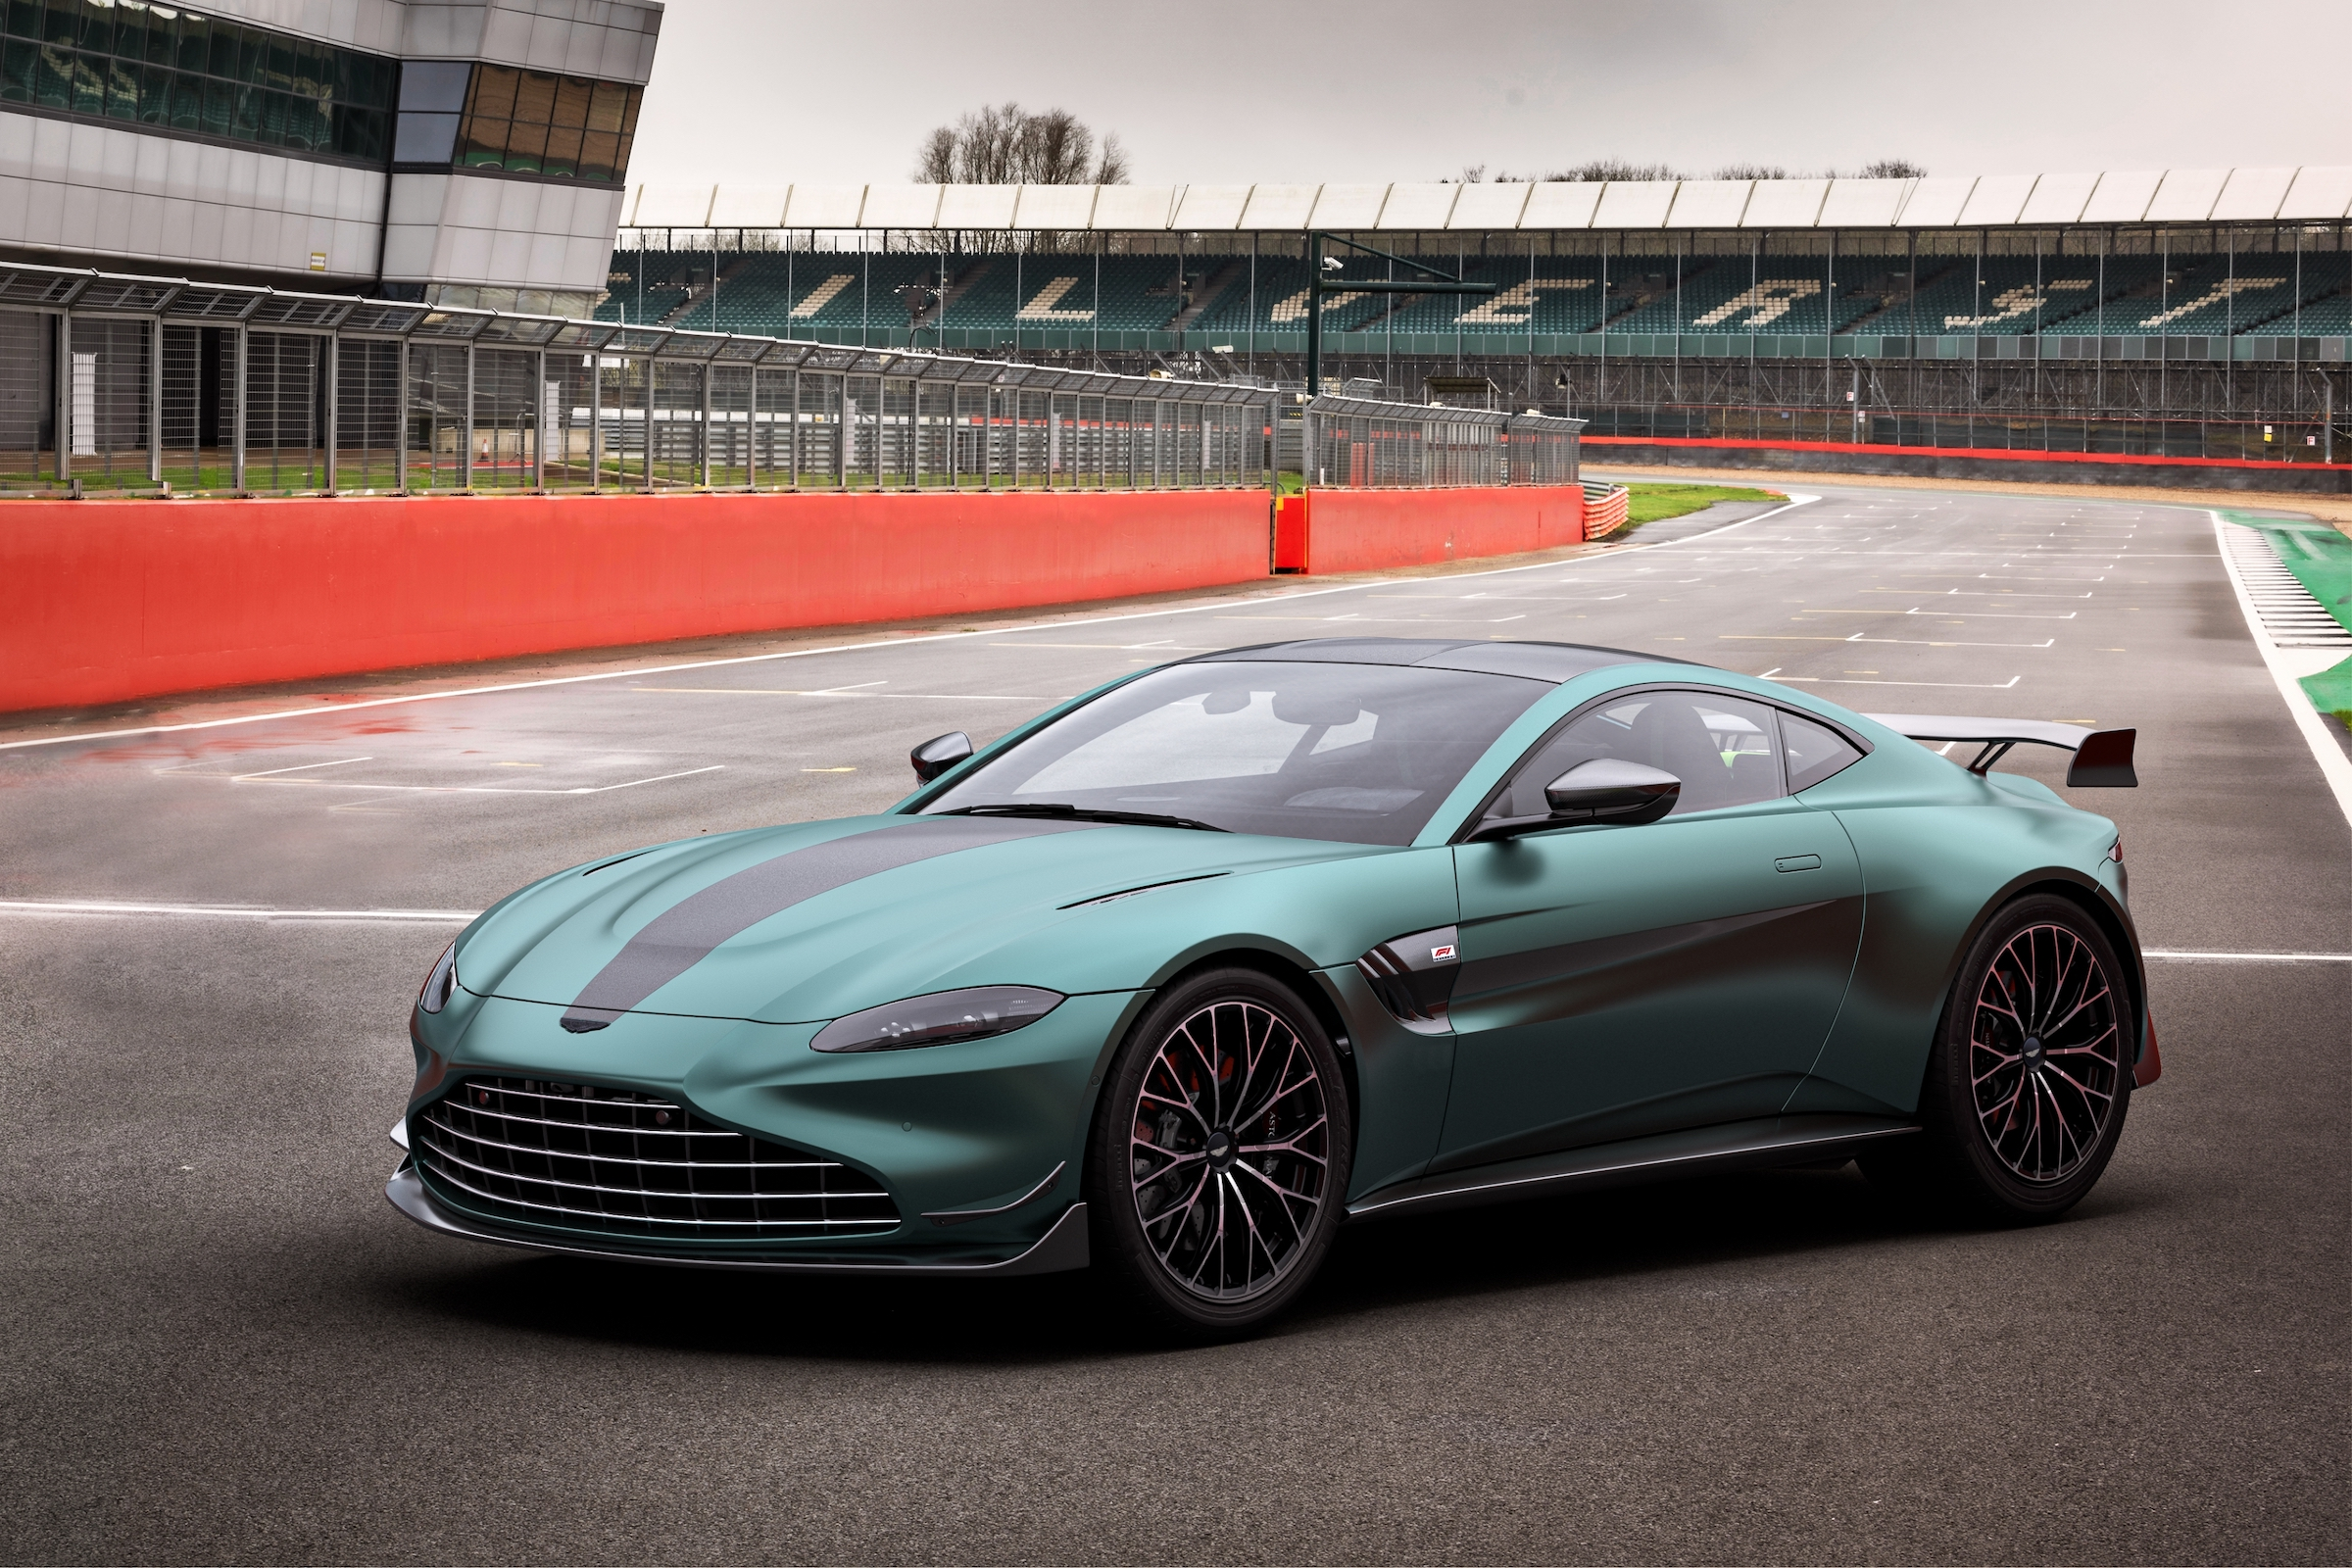 Aston Martin F1 Edition to be the fastest Vantage